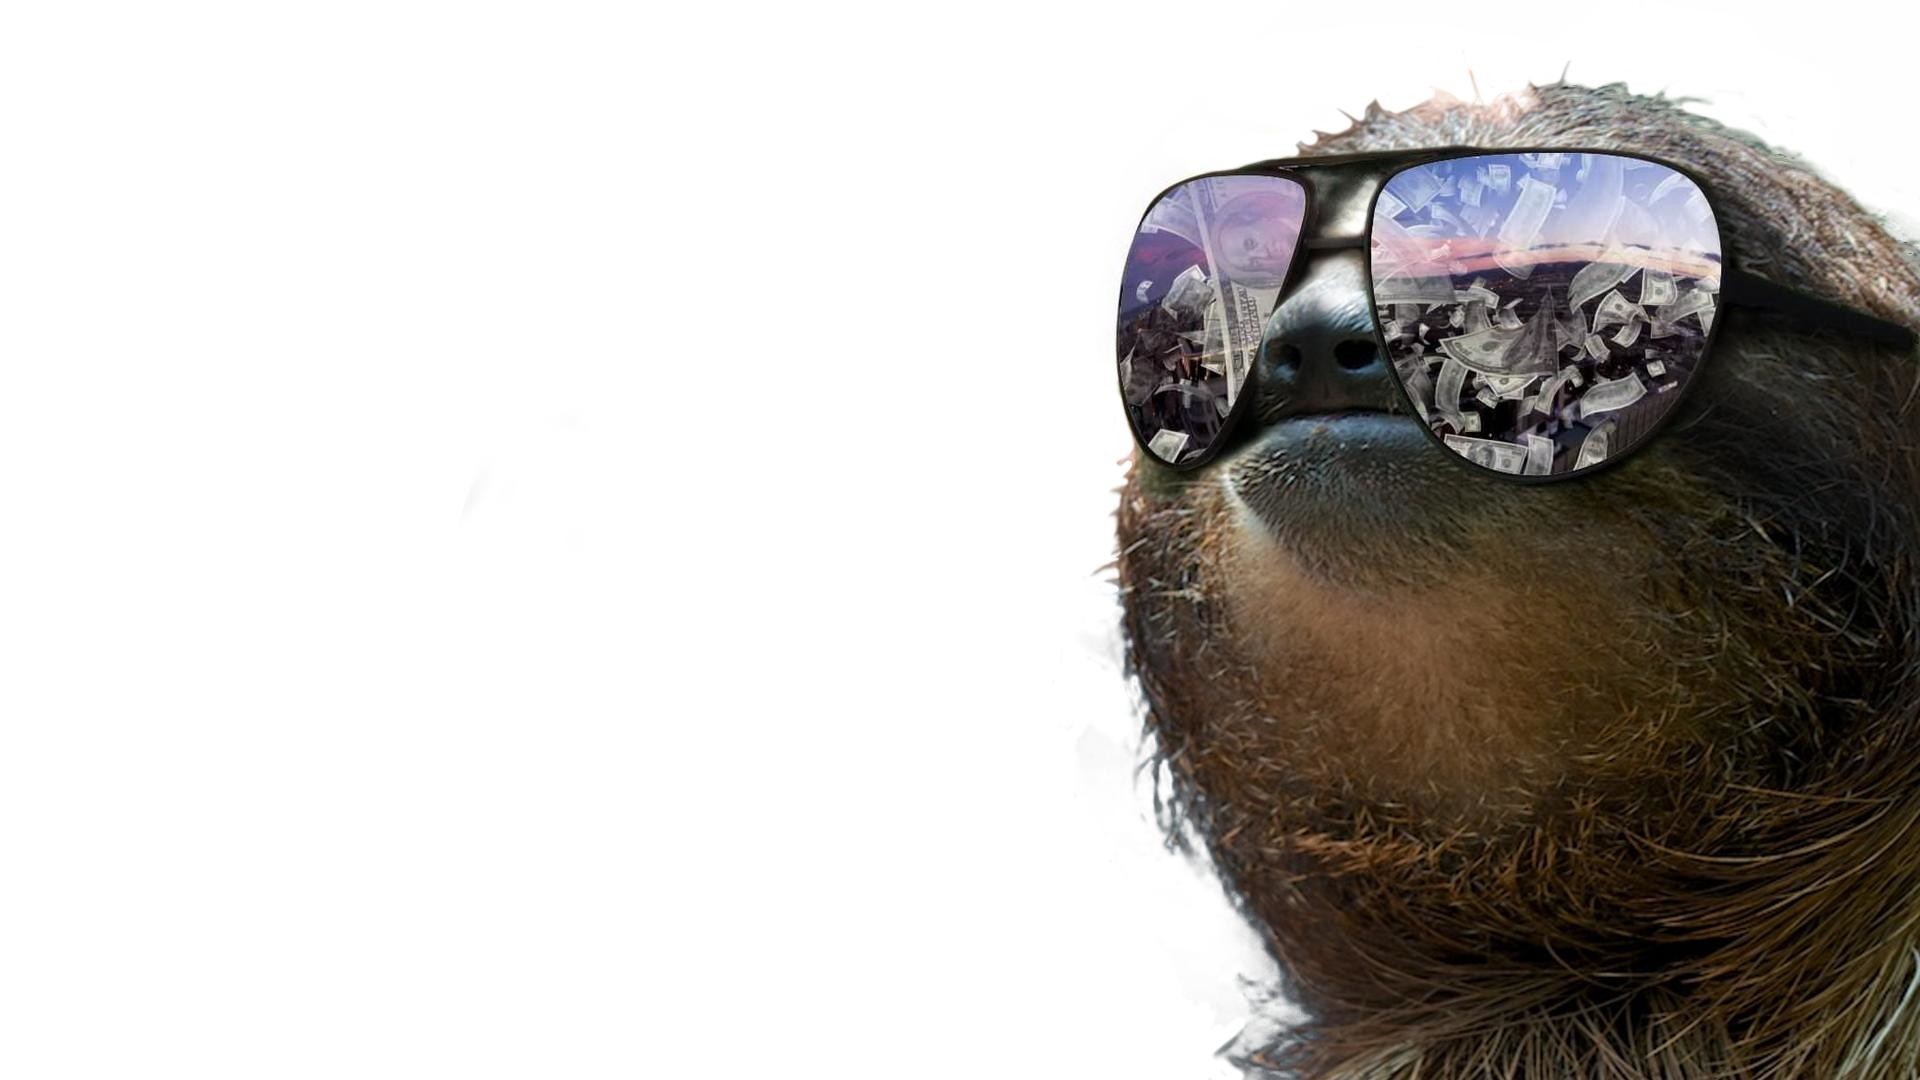 1920x1080 Sloth Wallpaper Design Ideas A Very Slothy Xpost From